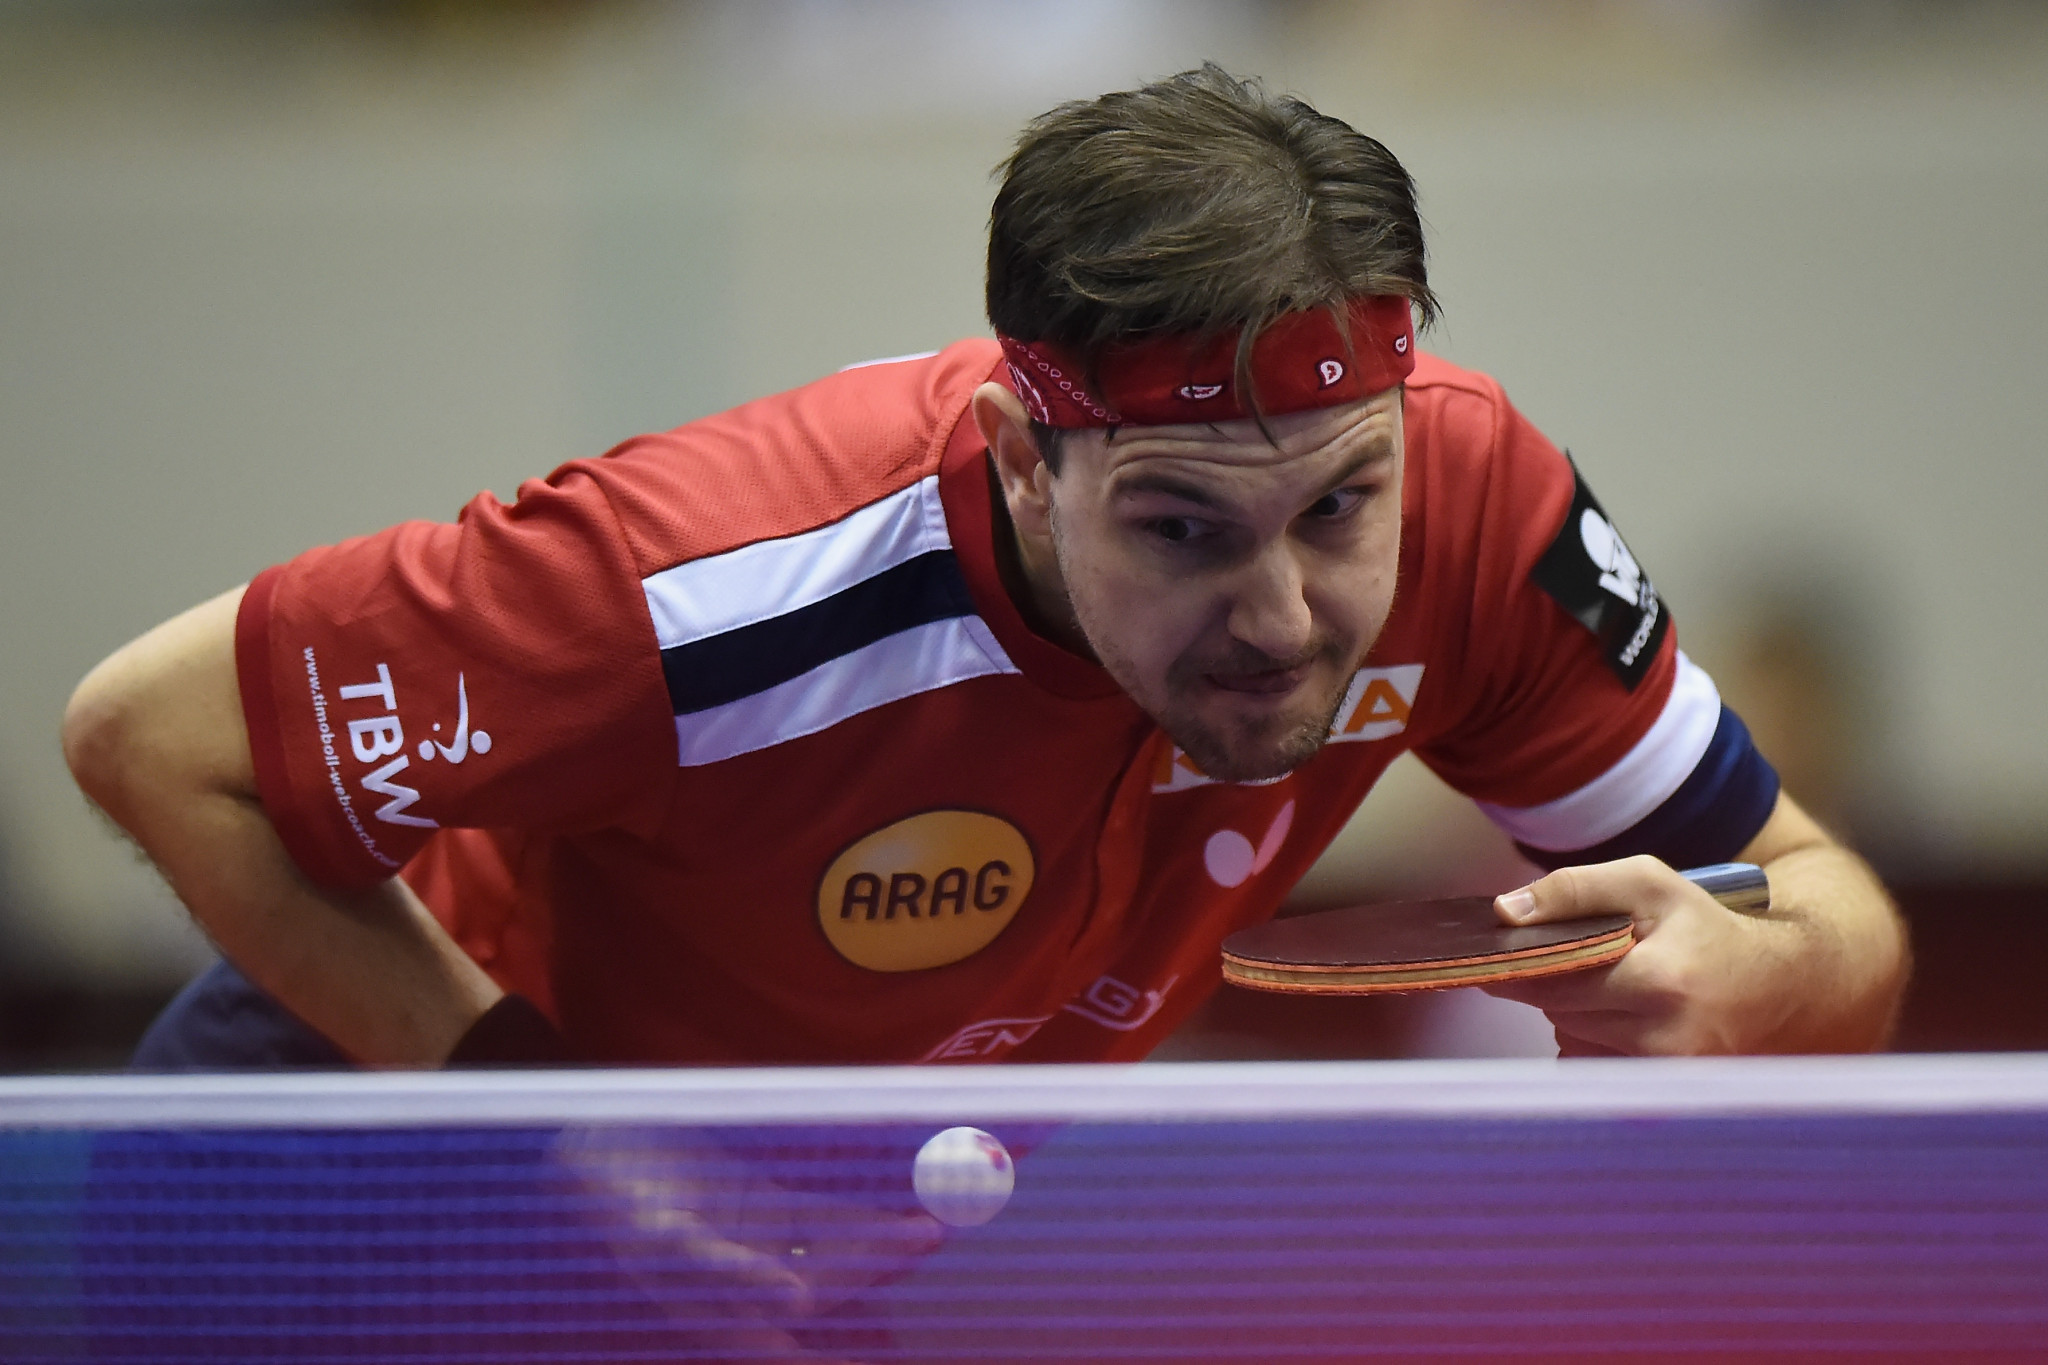 Timo Boll remains on course t defend his title at the Europe Top 16 Cup ©Getty Images